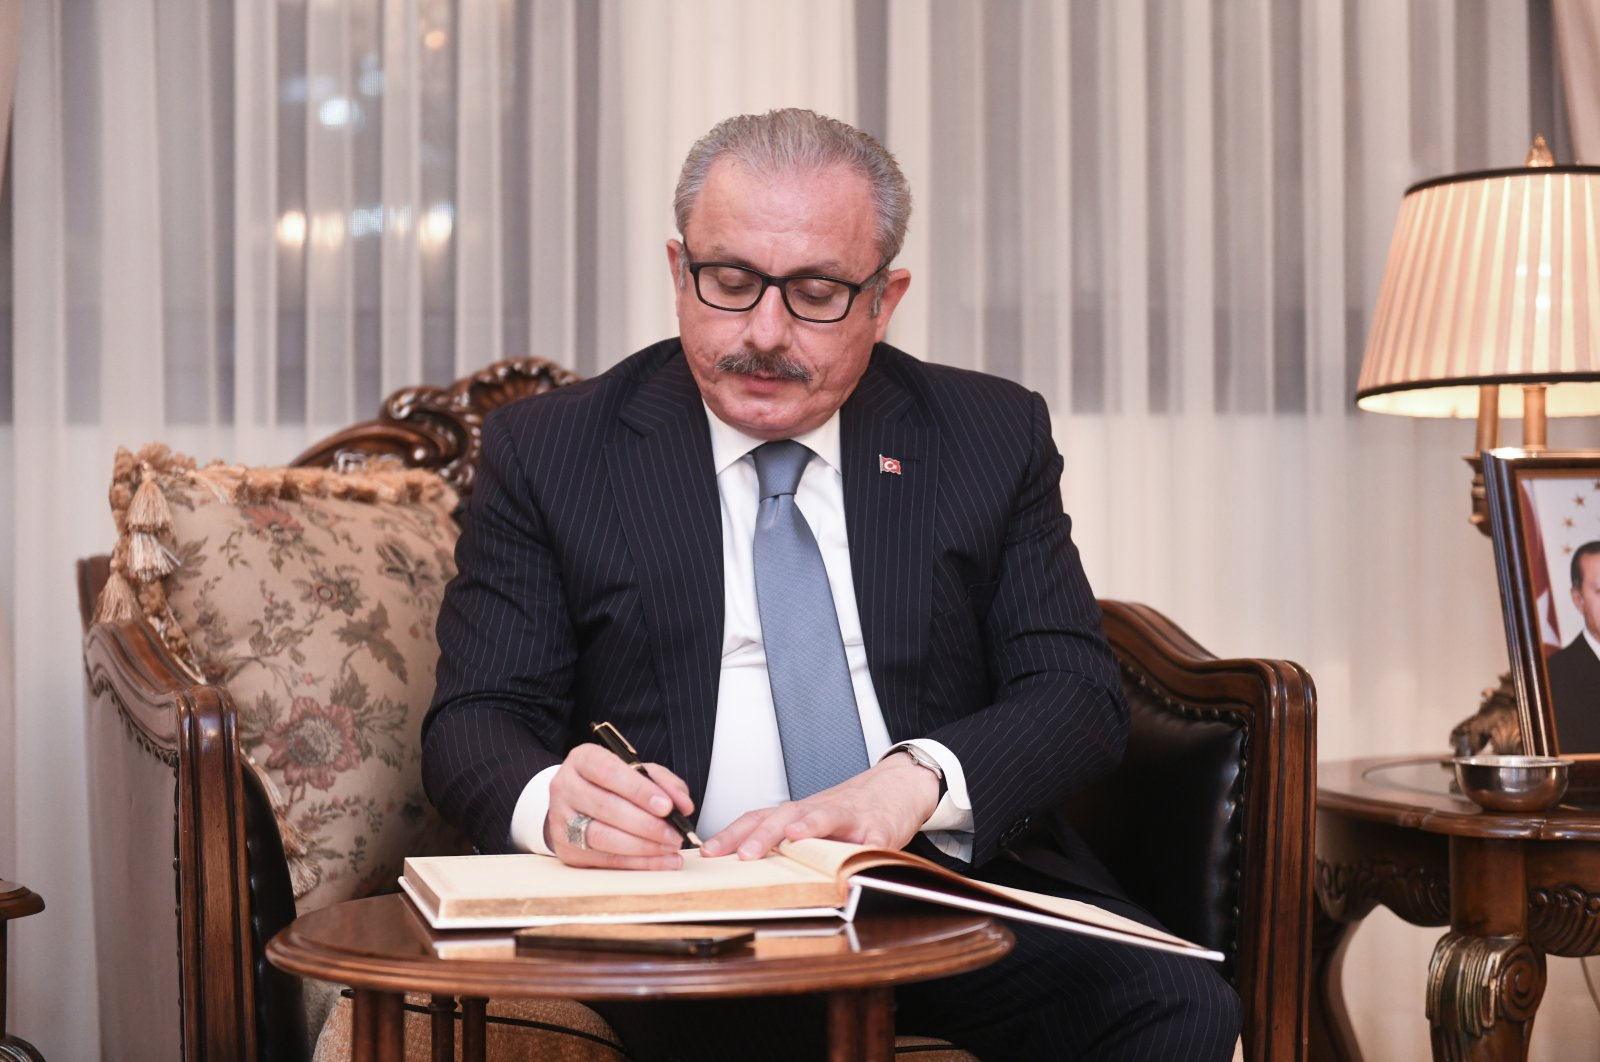 Parliament Speaker Mustafa Şentop visits the Turkish embassy in Kuwait as part of his official visit, July 12, 2021. (AA Photo)